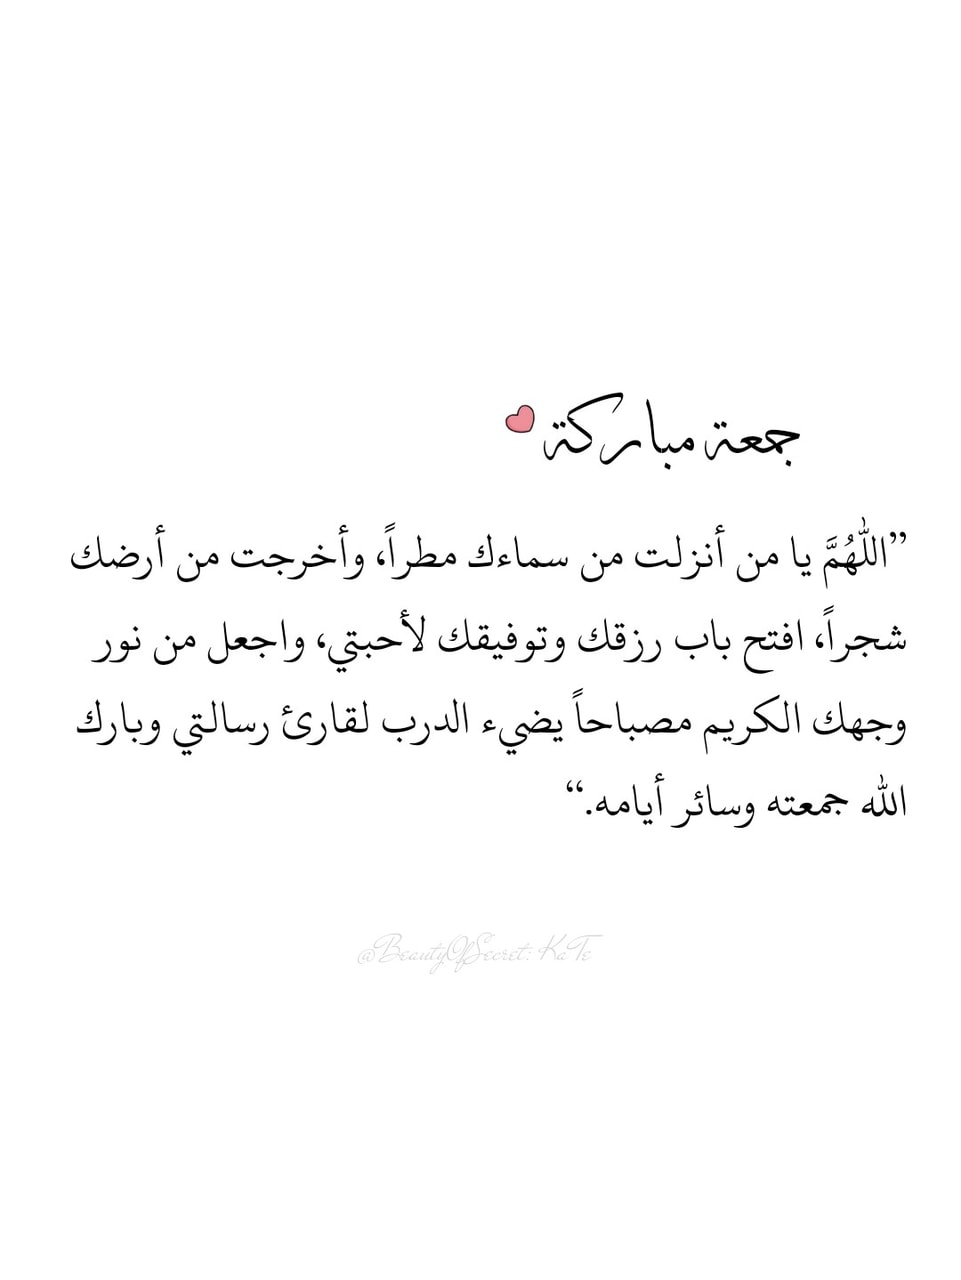 جمعة مباركة Shared By Ka Te On We Heart It